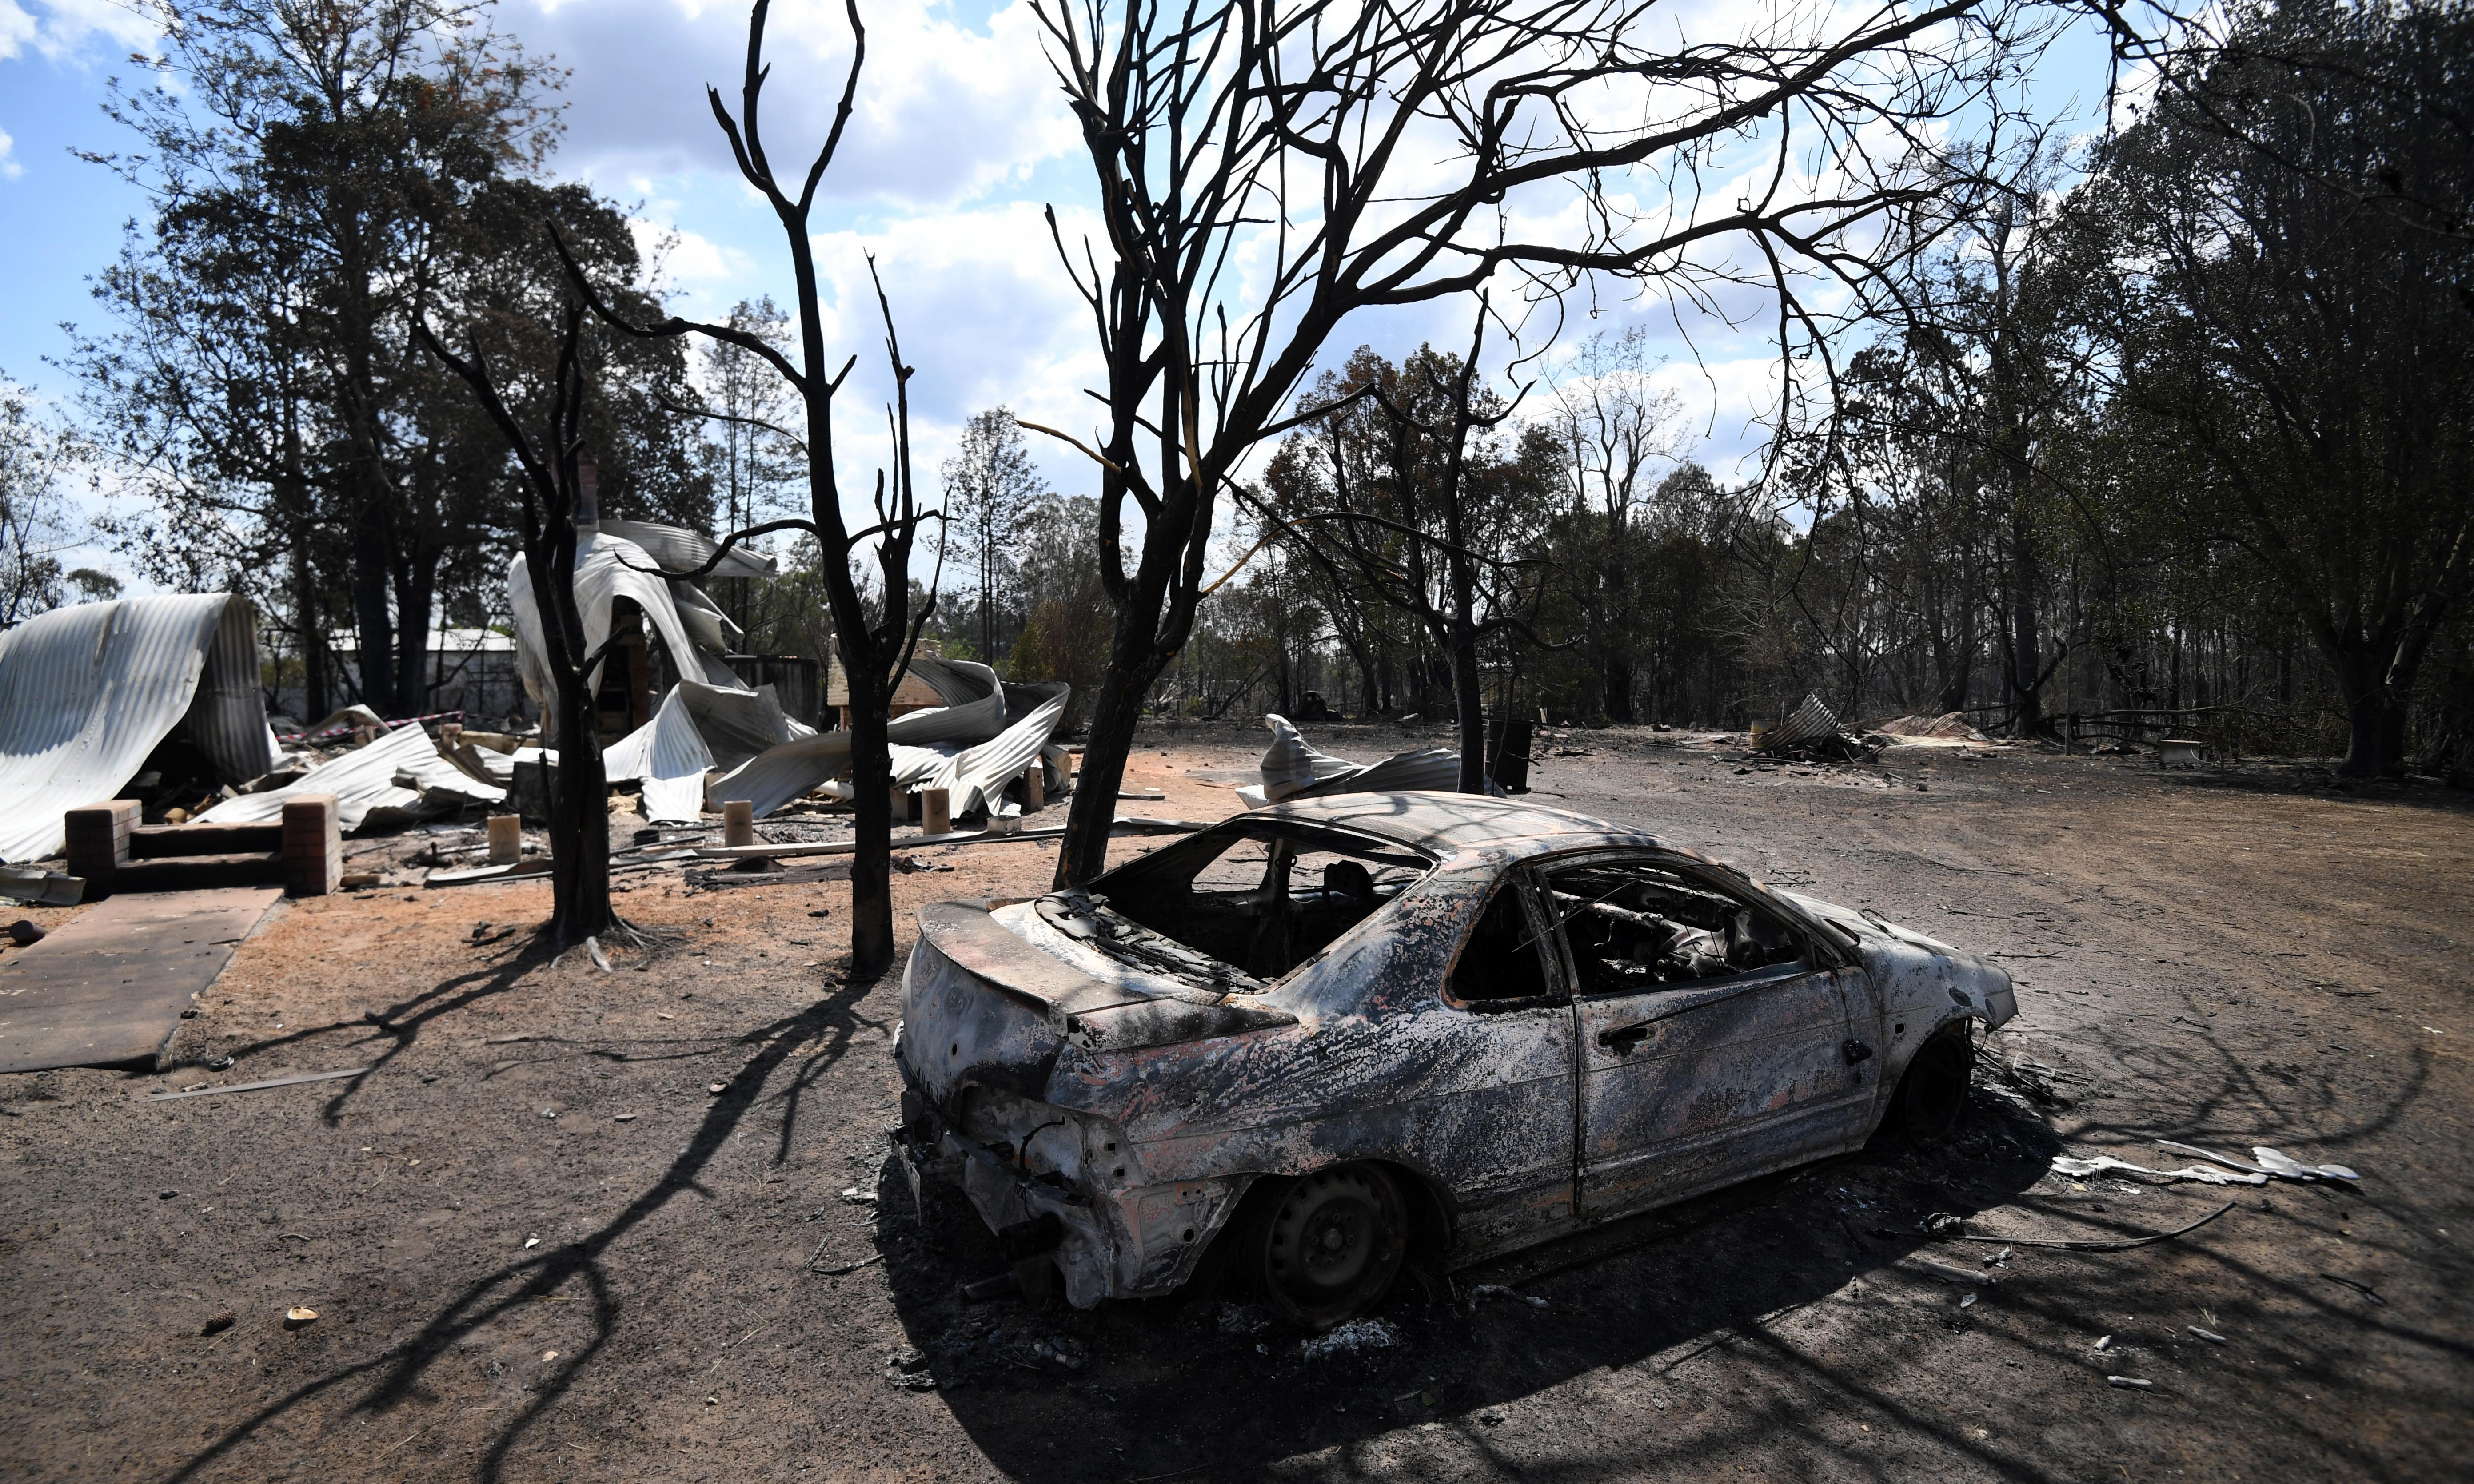 More than 50 homes destroyed by NSW bushfires as rain offers hope of respite